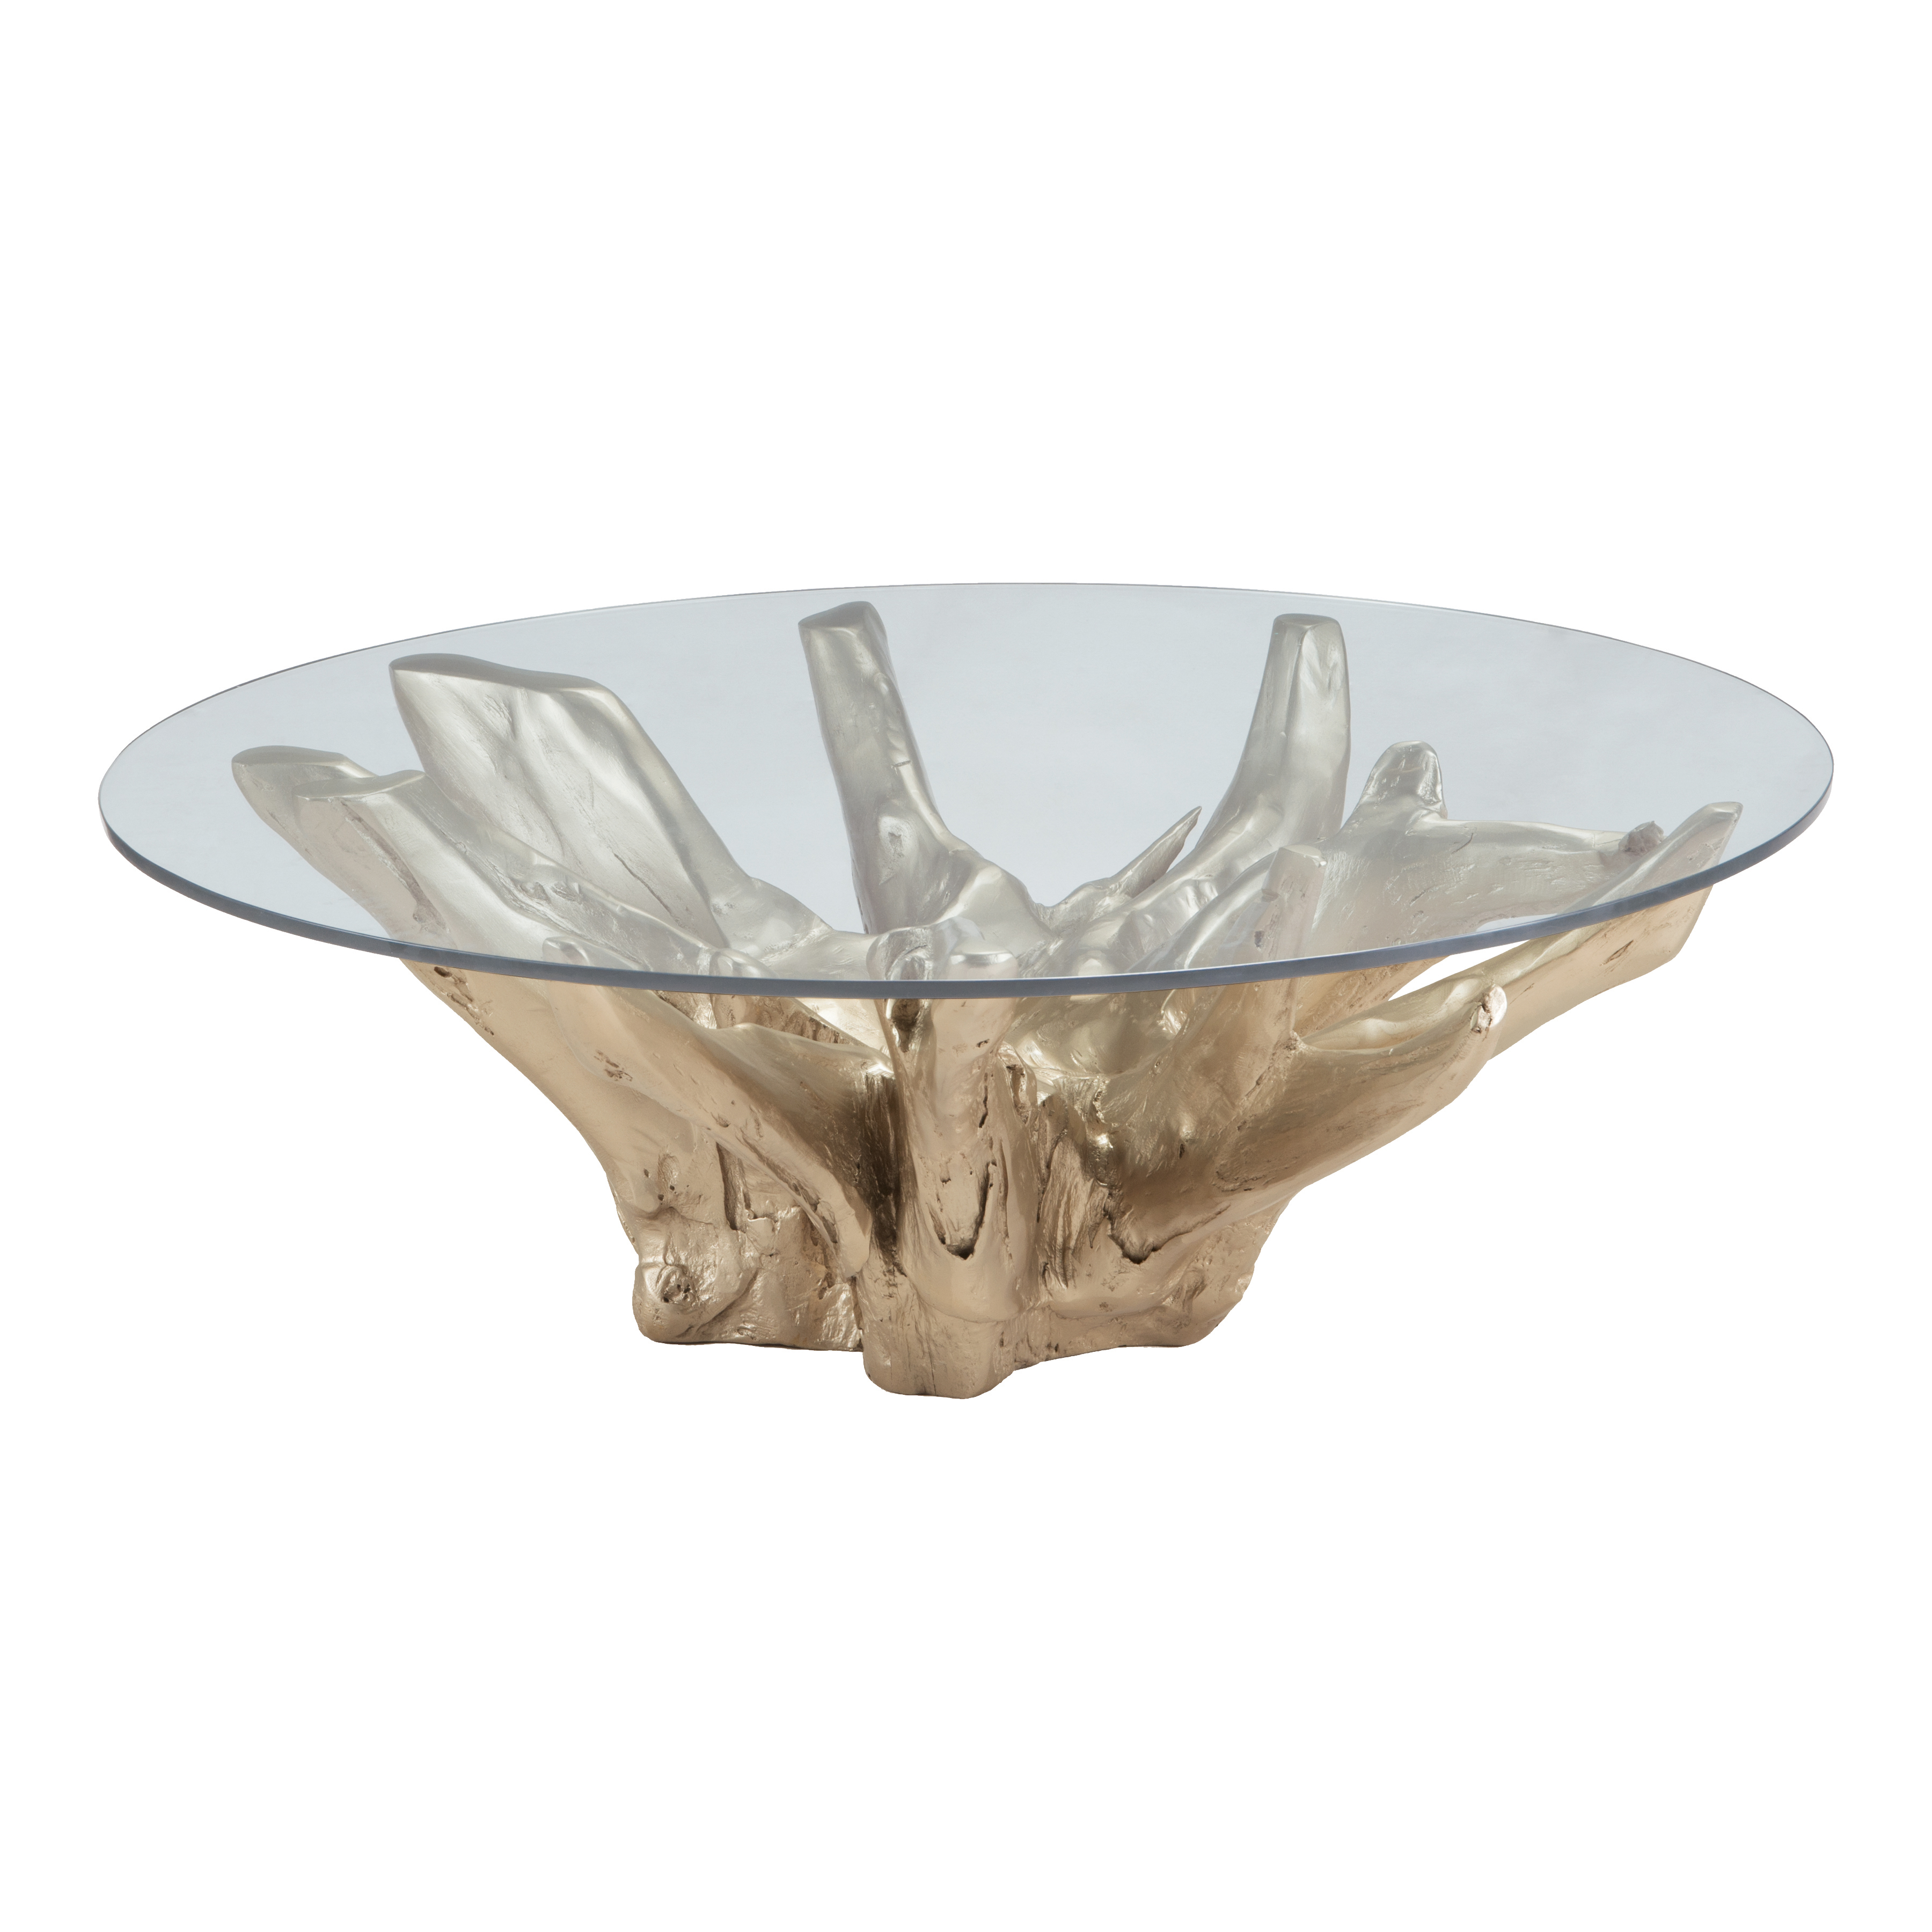 Yava Teak Root Cocktail Table with Glass Top in Champagne Gold | Elk Home